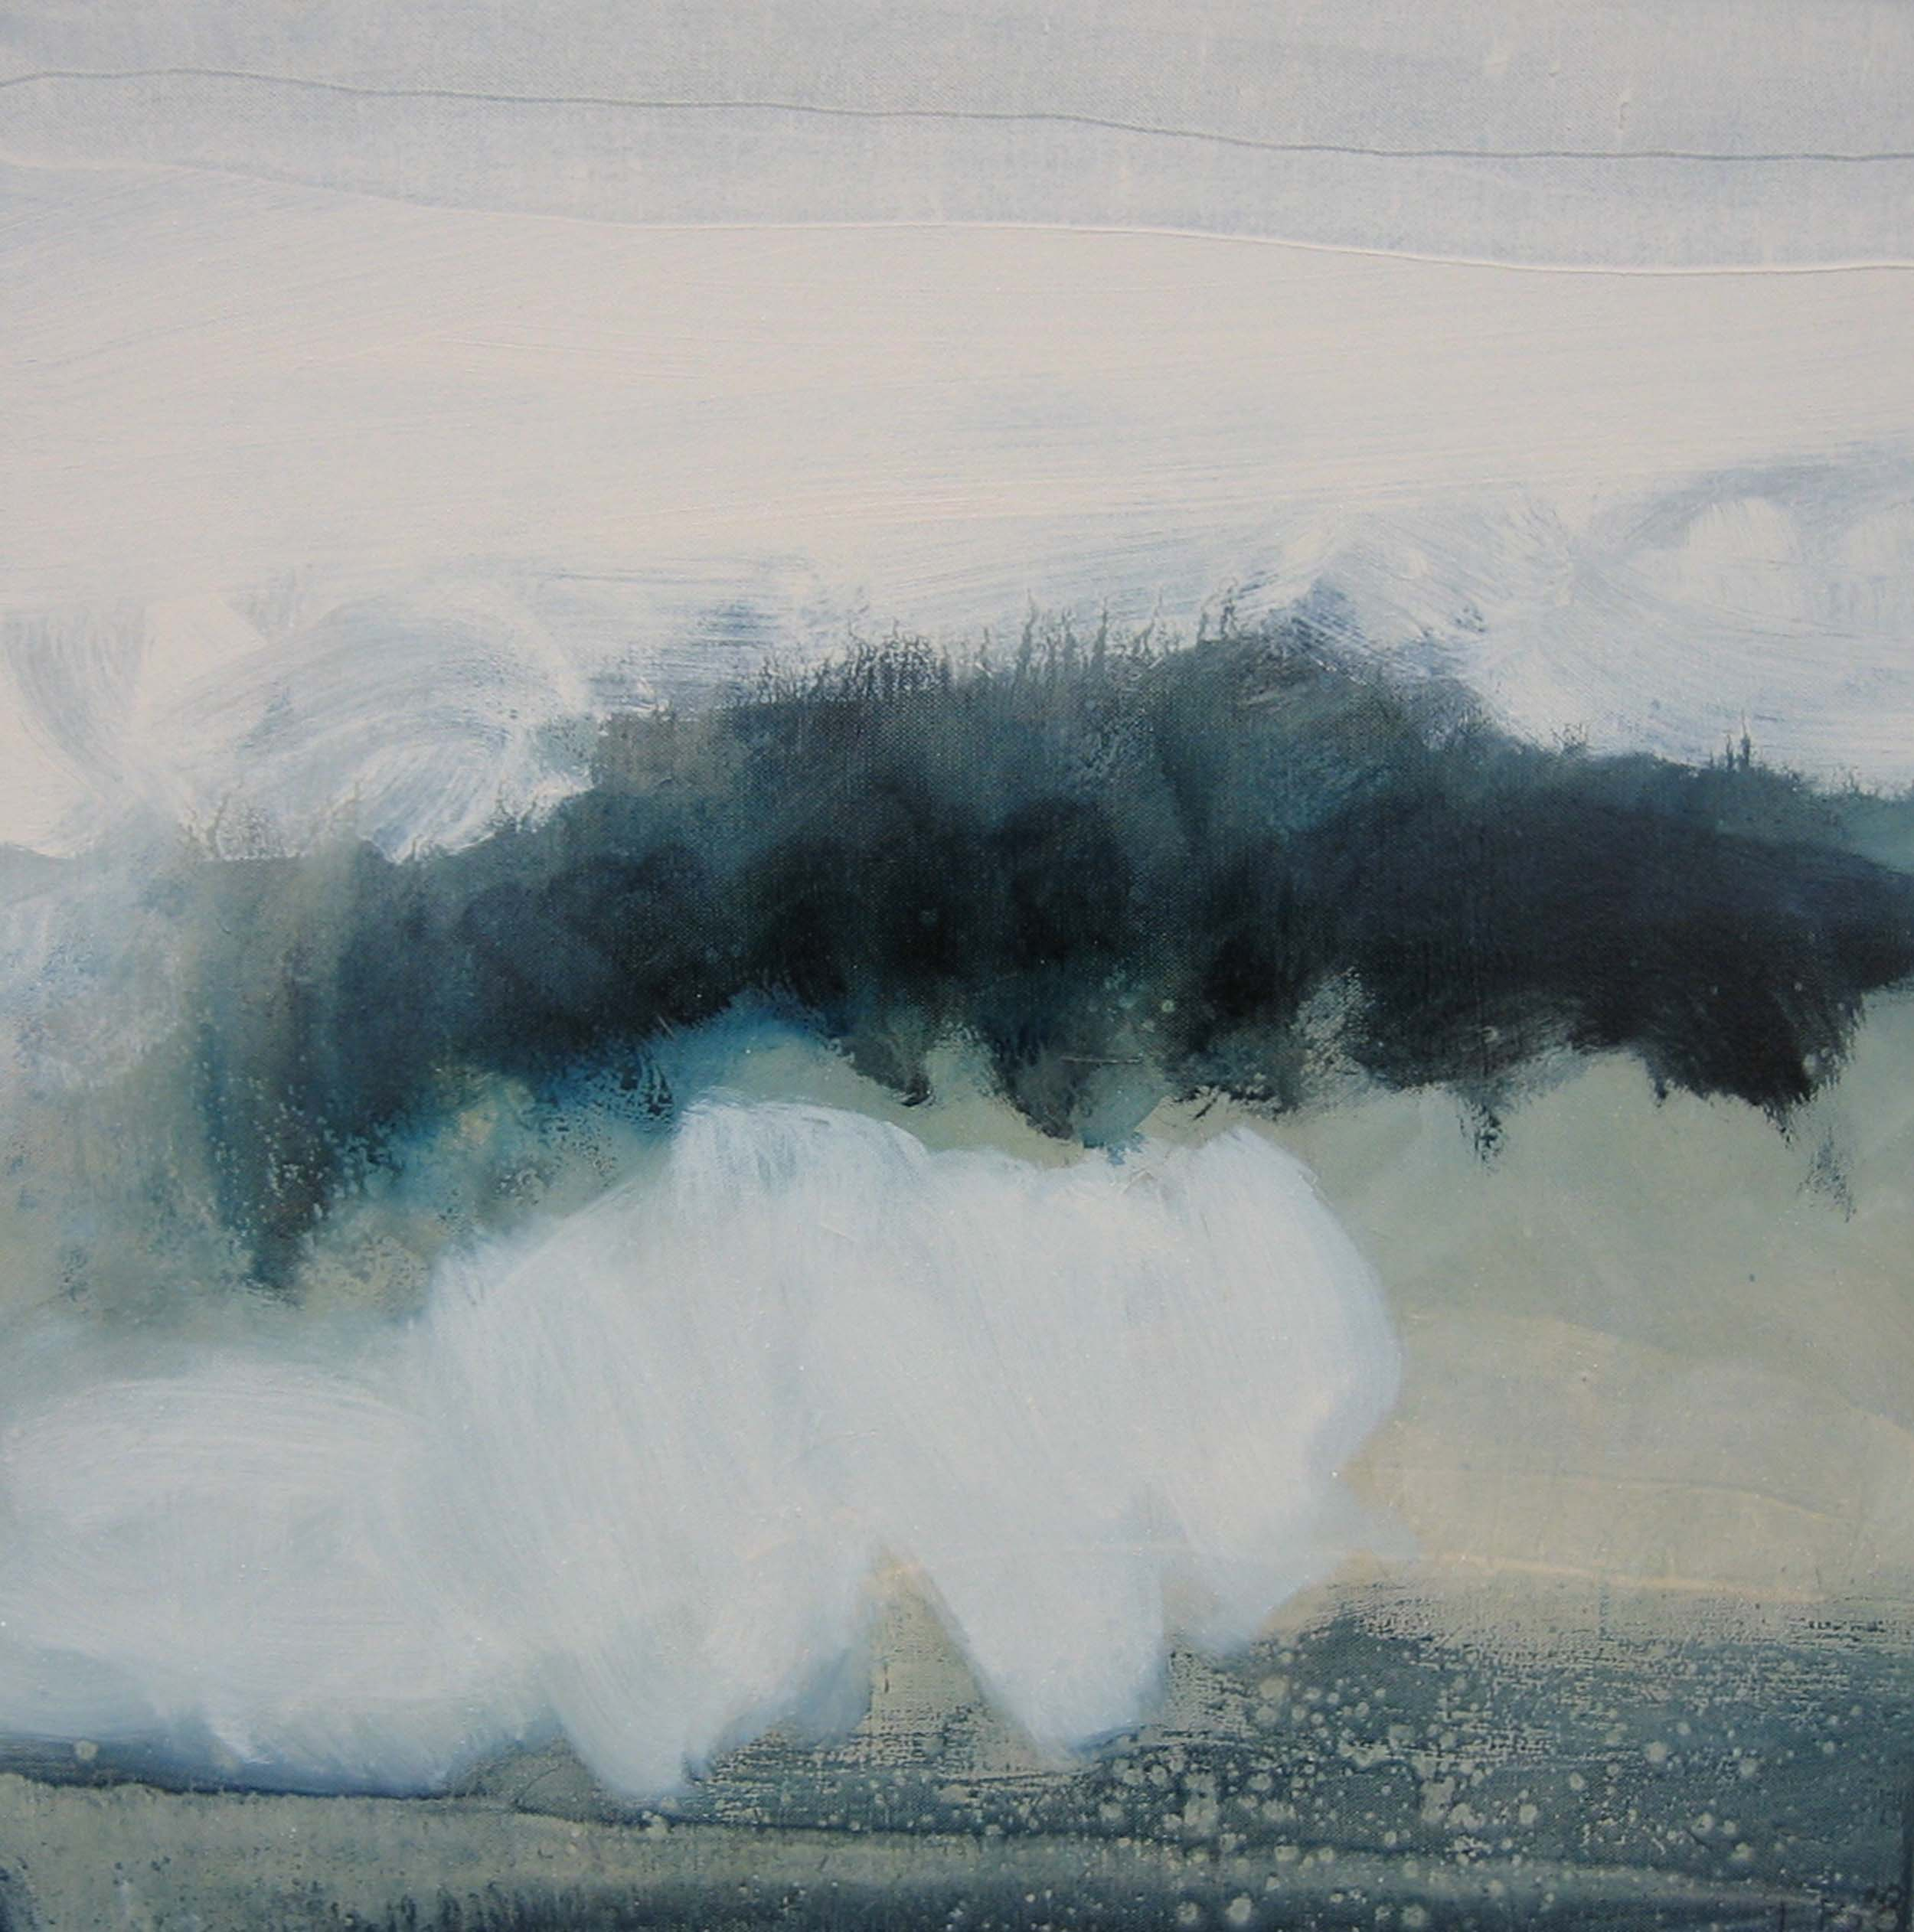 Leah Beggs 2008 - Derryclare - Oil on Canvas-  60 x 60cm_sml.jpg